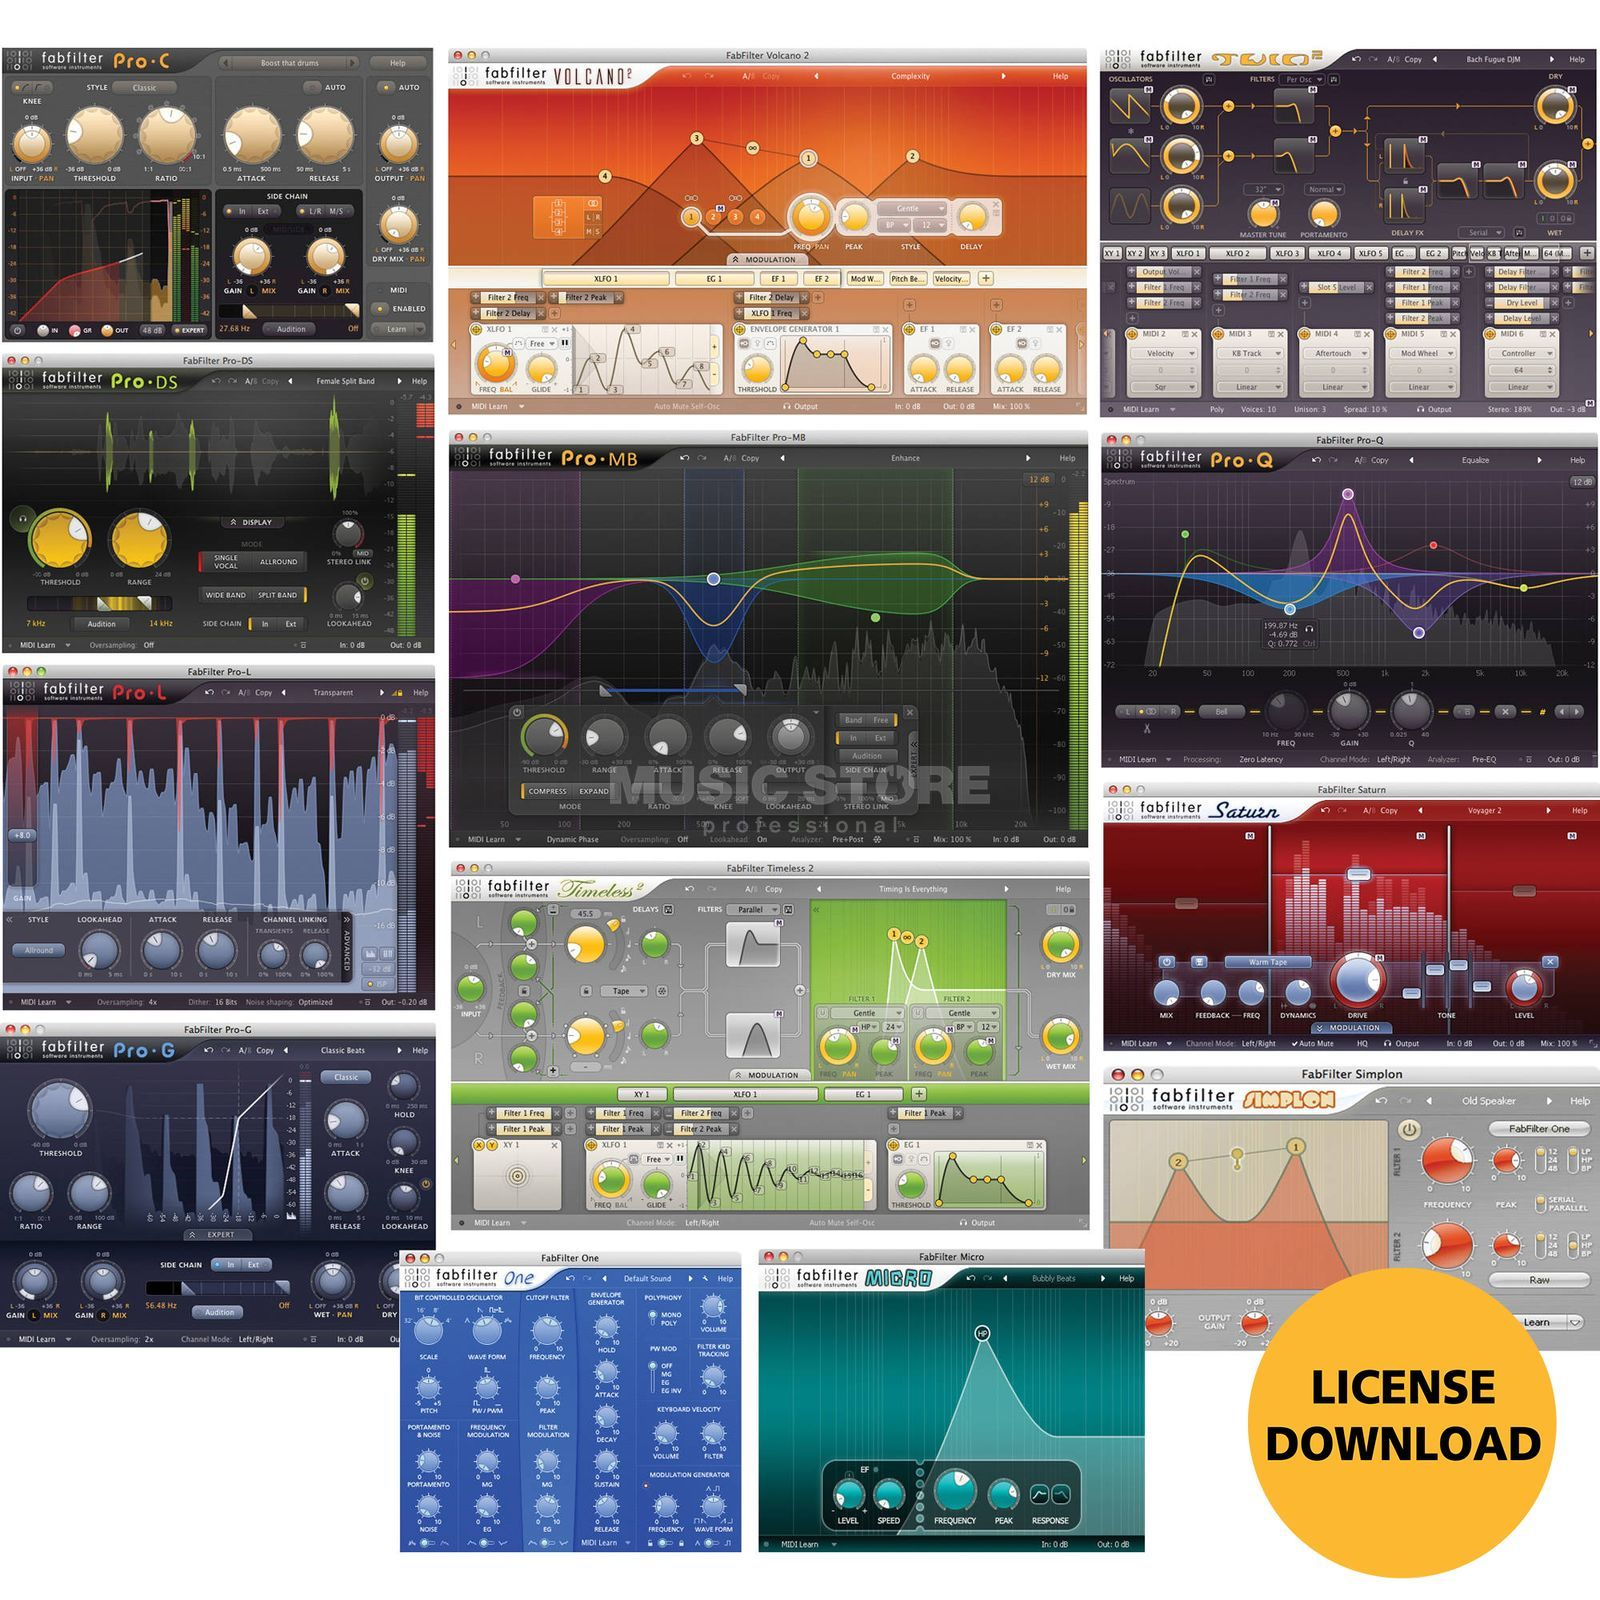 Fabfilter Total Bundle License Code Image du produit